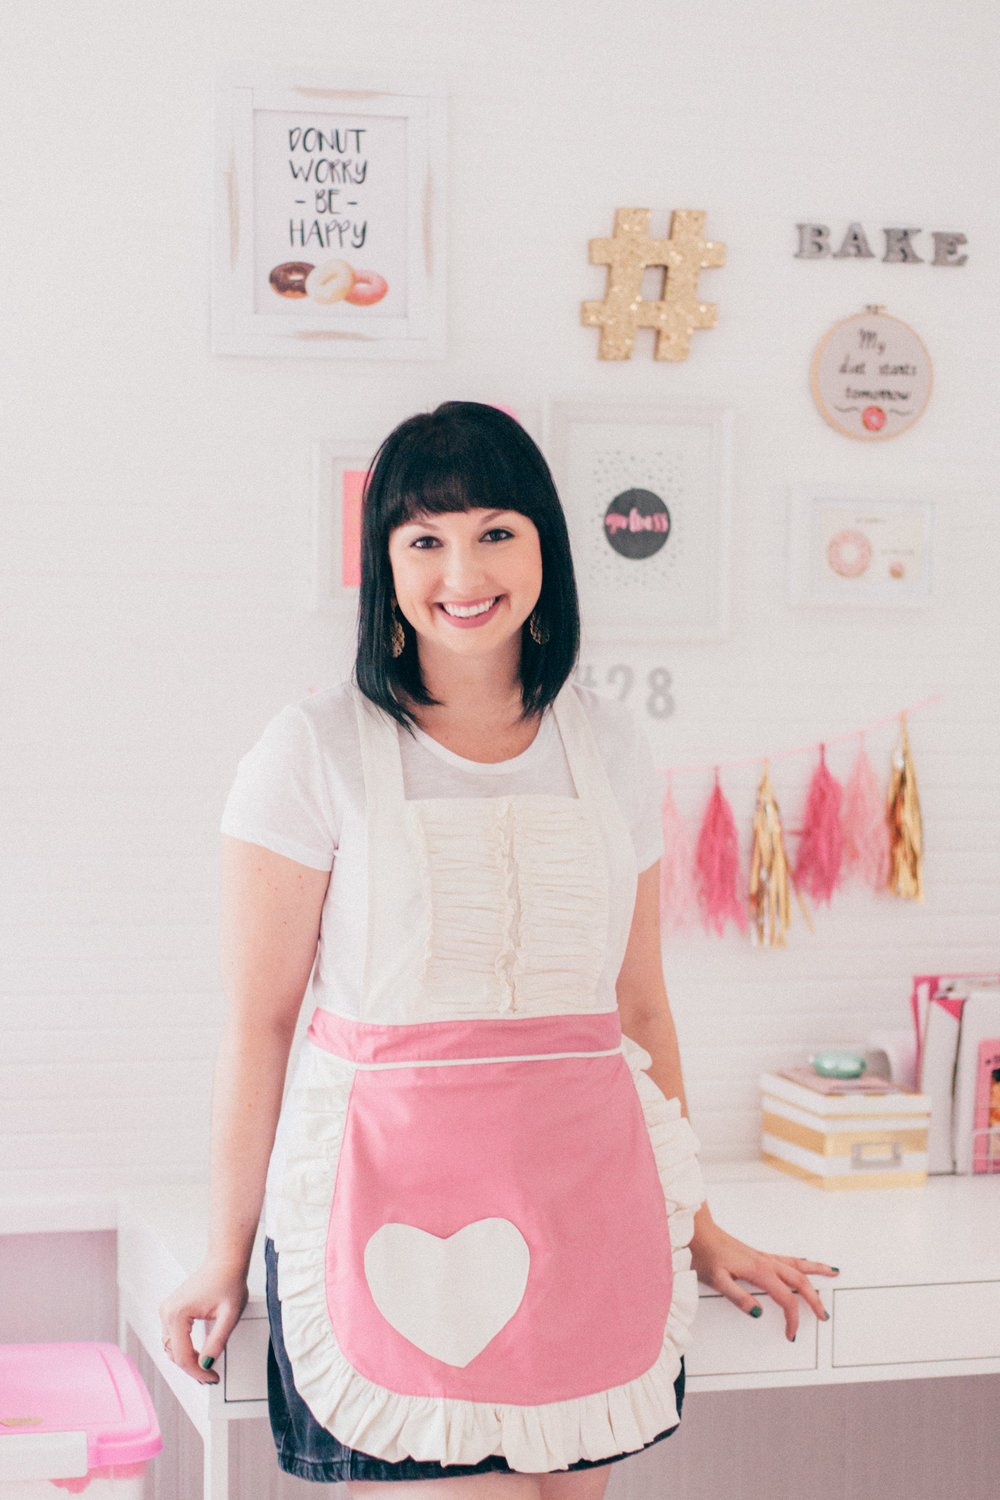 Jen Jacobs, owner of Wandering Whisk Bakeshop